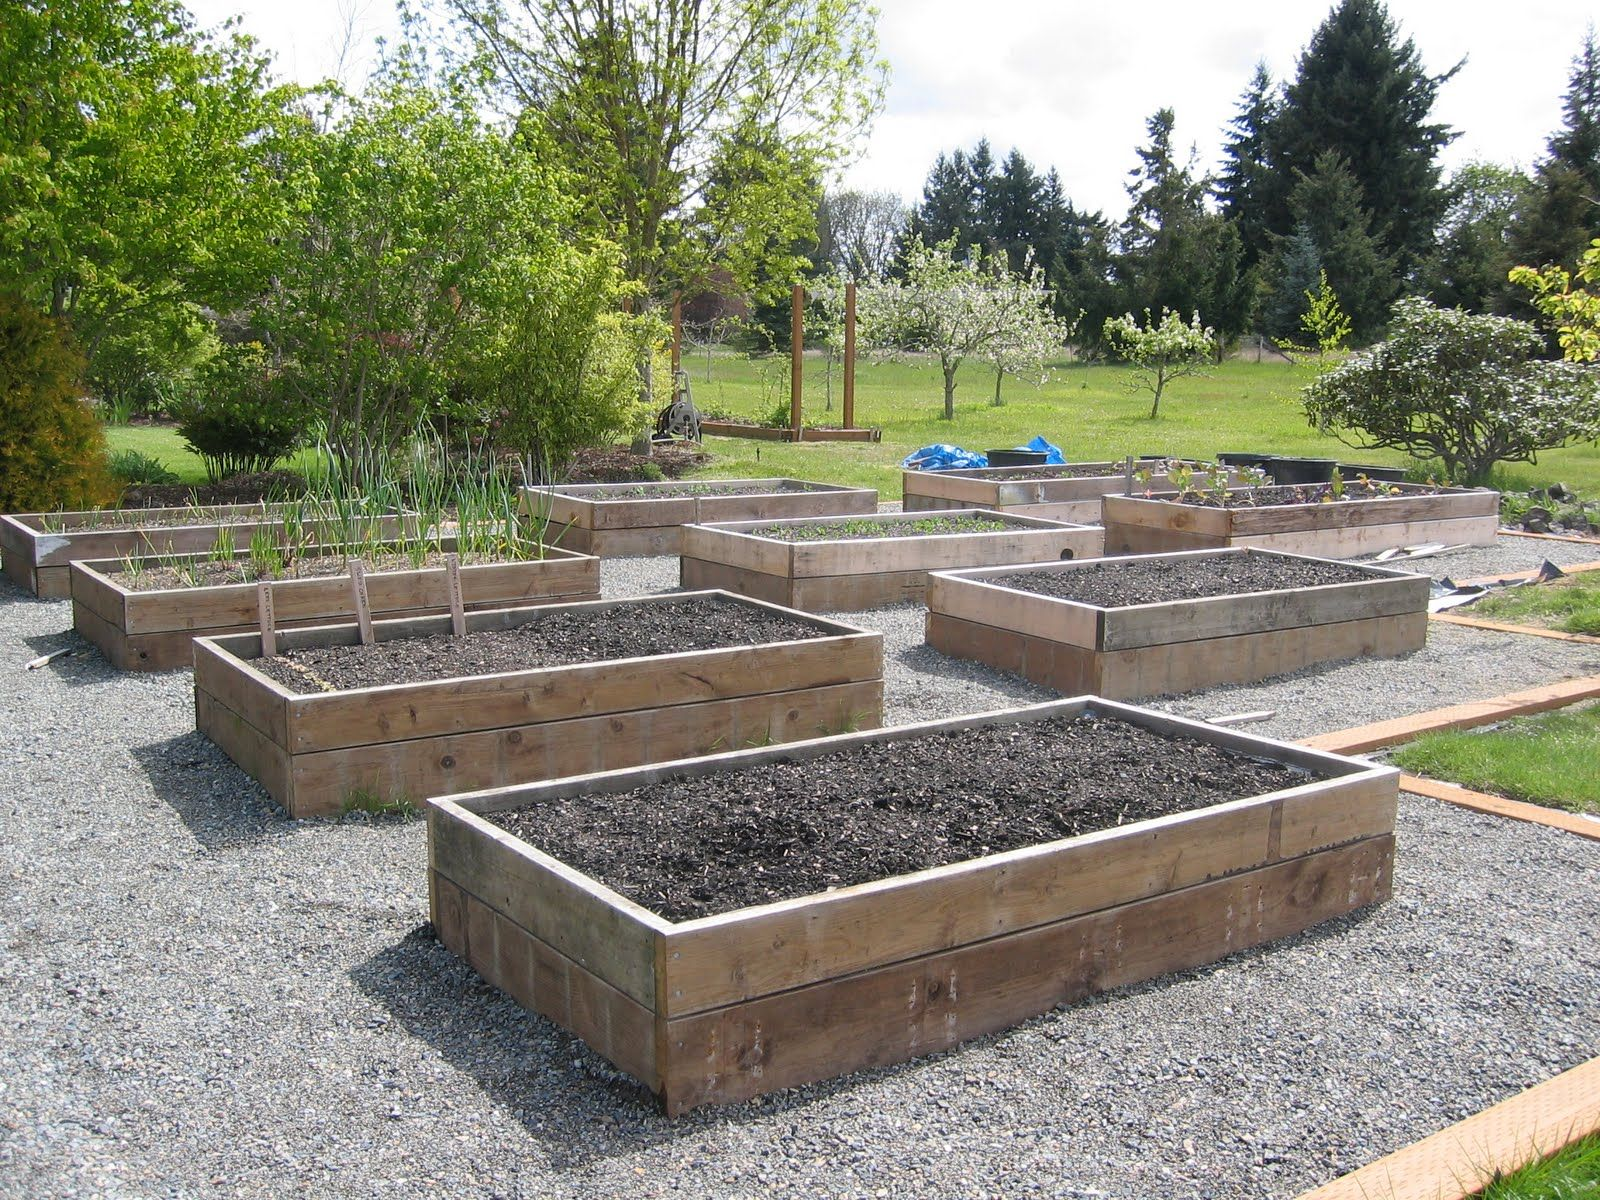 Designing A Vegetable Garden With Raised Beds raised bed vegetable garden layout ideas Beautiful Raised Garden Ideas 3 Raised Bed Vegetable Garden Plan